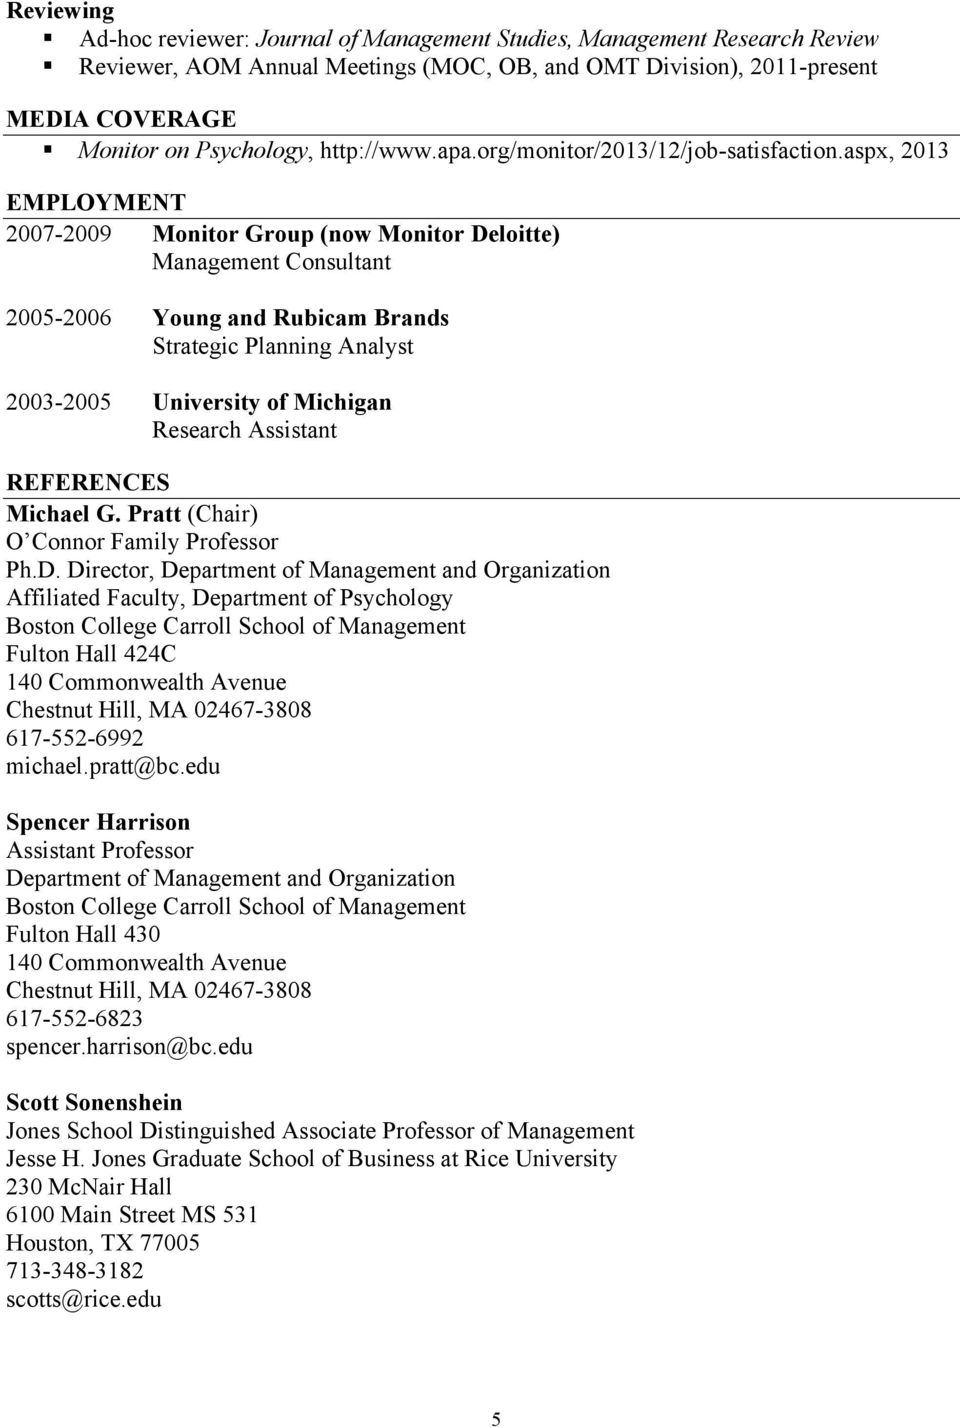 aspx, 2013 EMPLOYMENT 2007-2009 Monitor Group (now Monitor Deloitte) Management Consultant 2005-2006 Young and Rubicam Brands Strategic Planning Analyst 2003-2005 University of Michigan Research